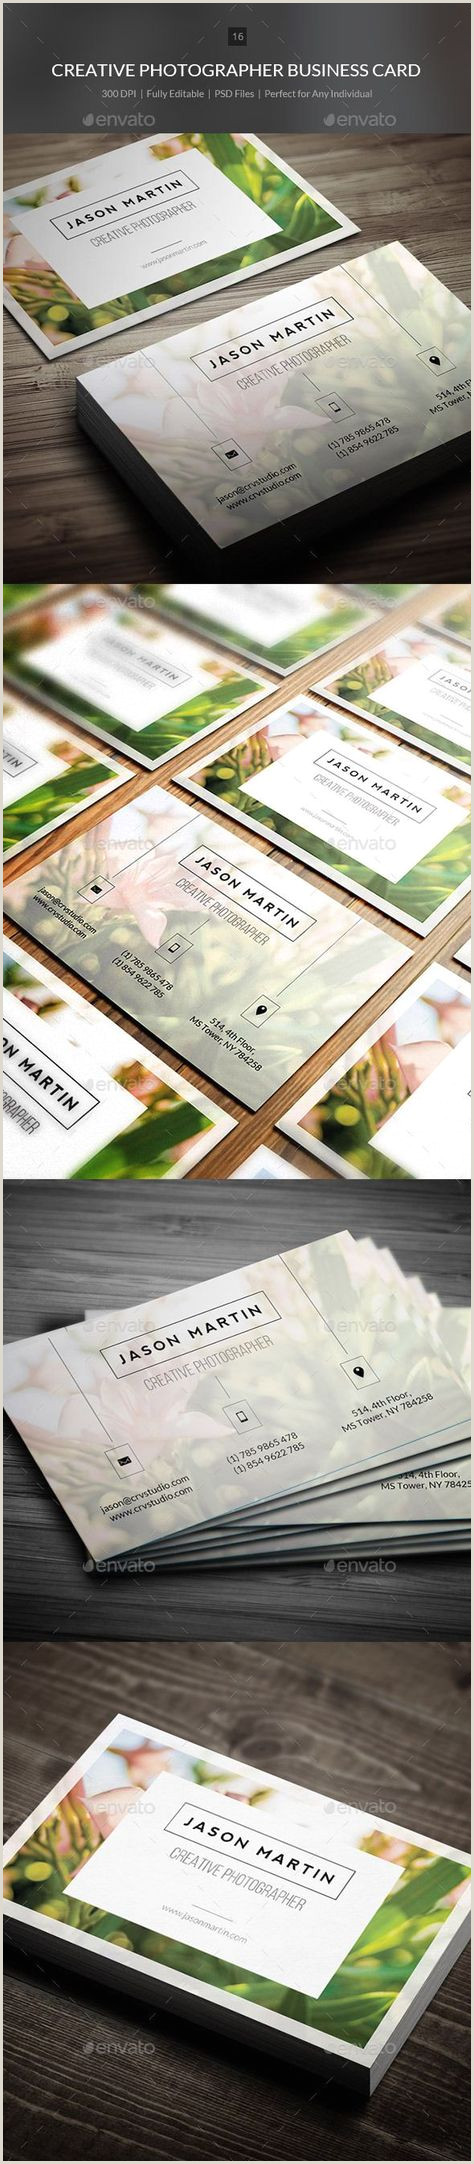 Creative Business Cards Templates 40 Trendy Ideas Photography Business Cards Template Creative